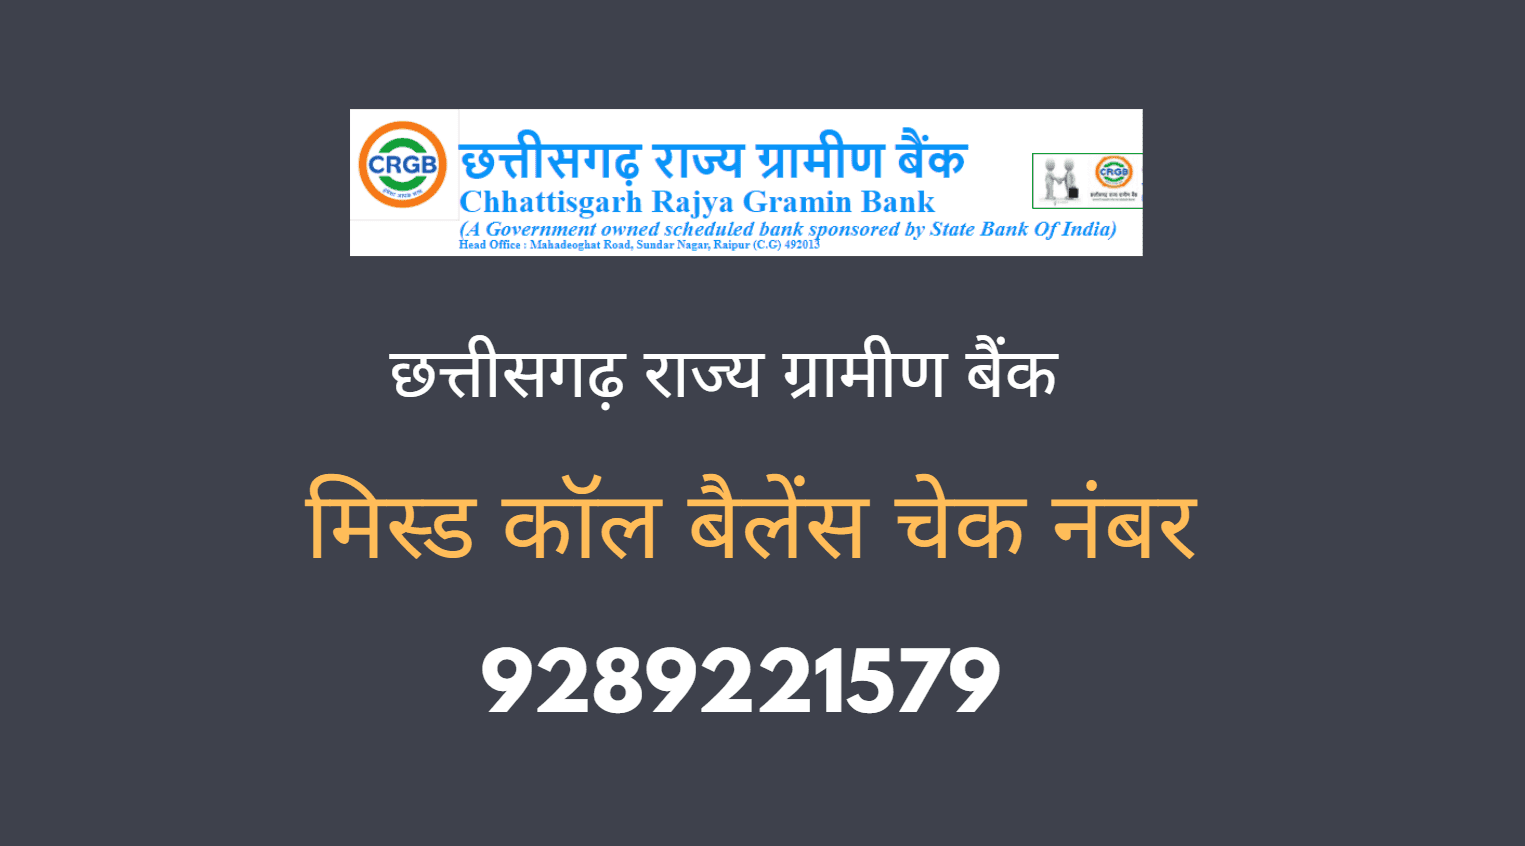 Chhattisgarh Rajya Gramin Bank missed call Balance check Number